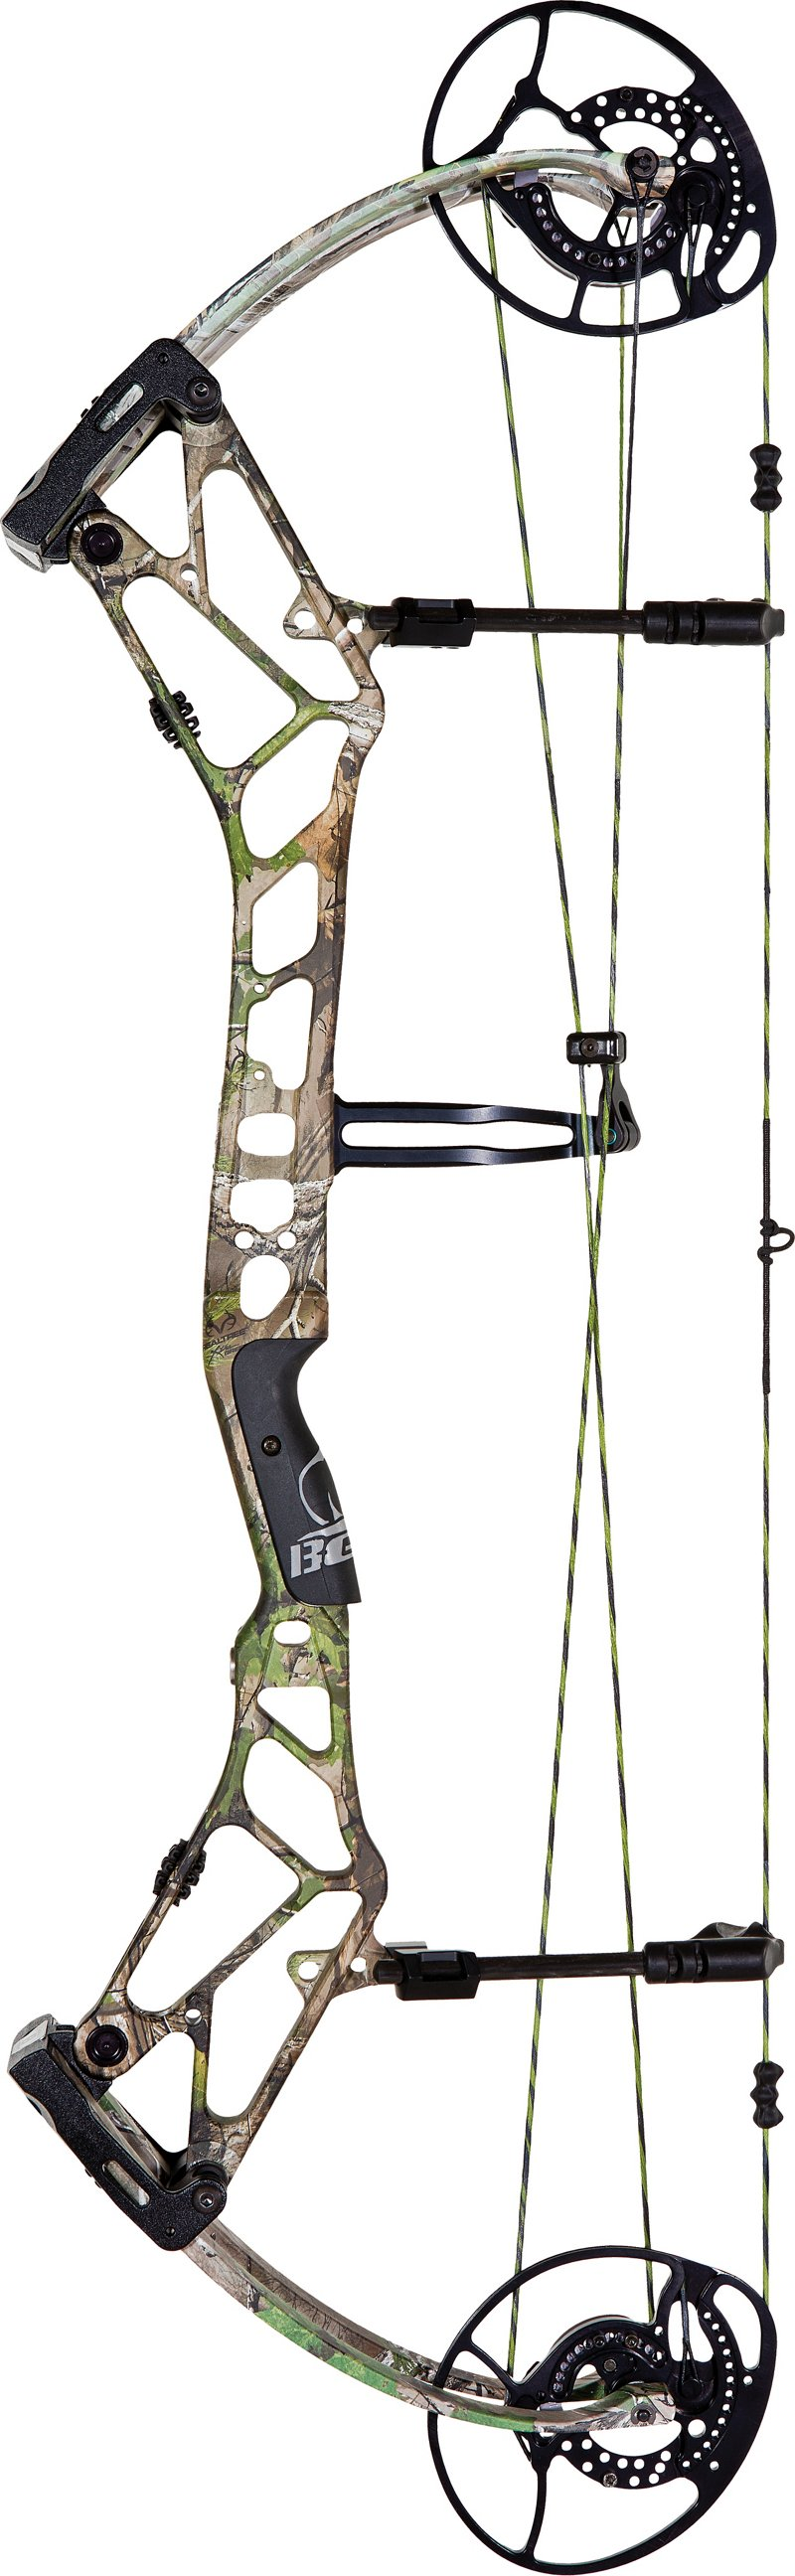 Bear Archery BR33 Compound Bow - Archery, Bows And Cross Bows at Academy Sports thumbnail